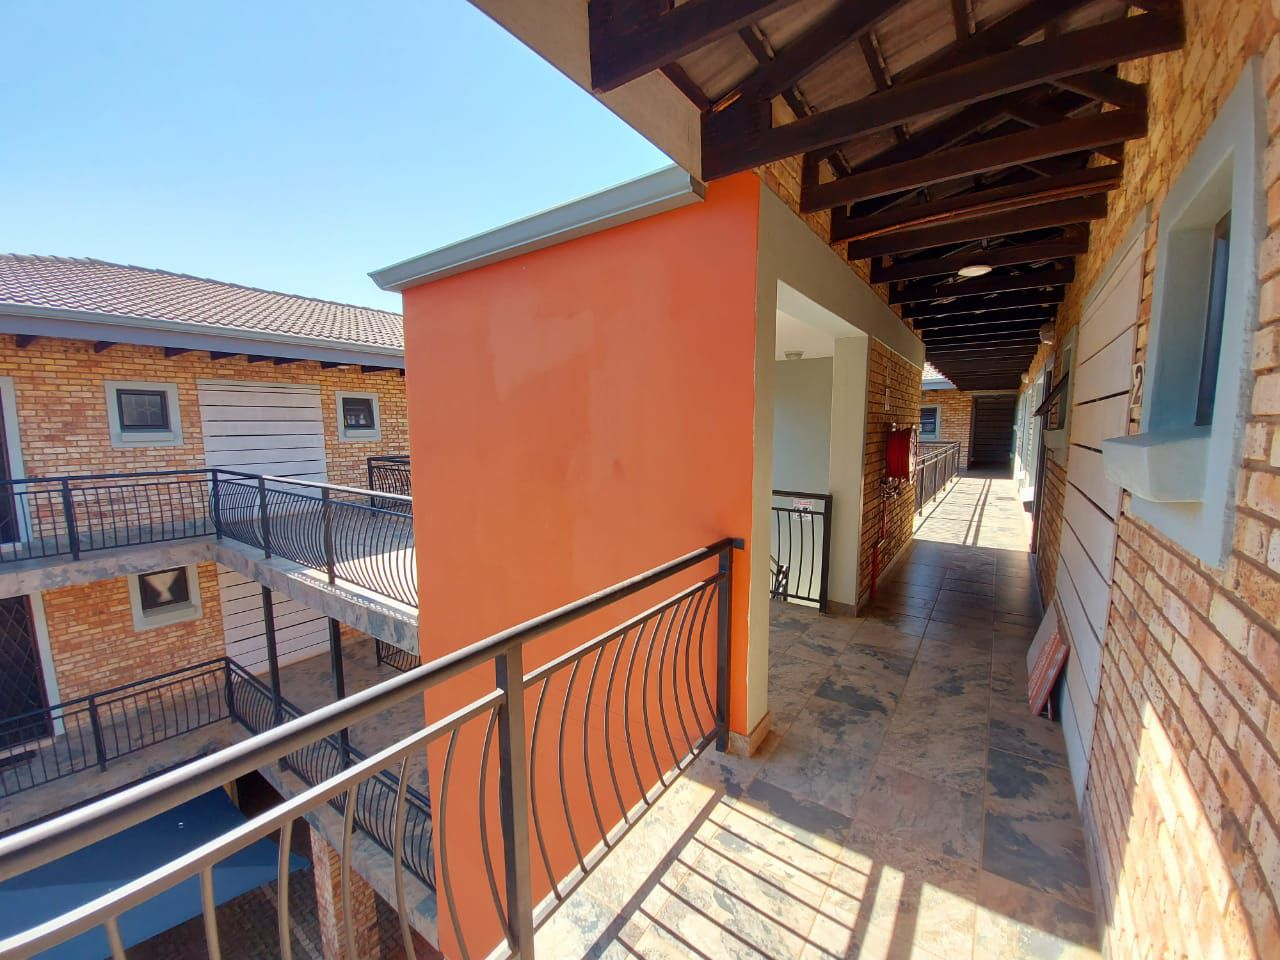 Apartment in Bult - WhatsApp Image 2020-08-17 at 13.25.38 (2).jpeg